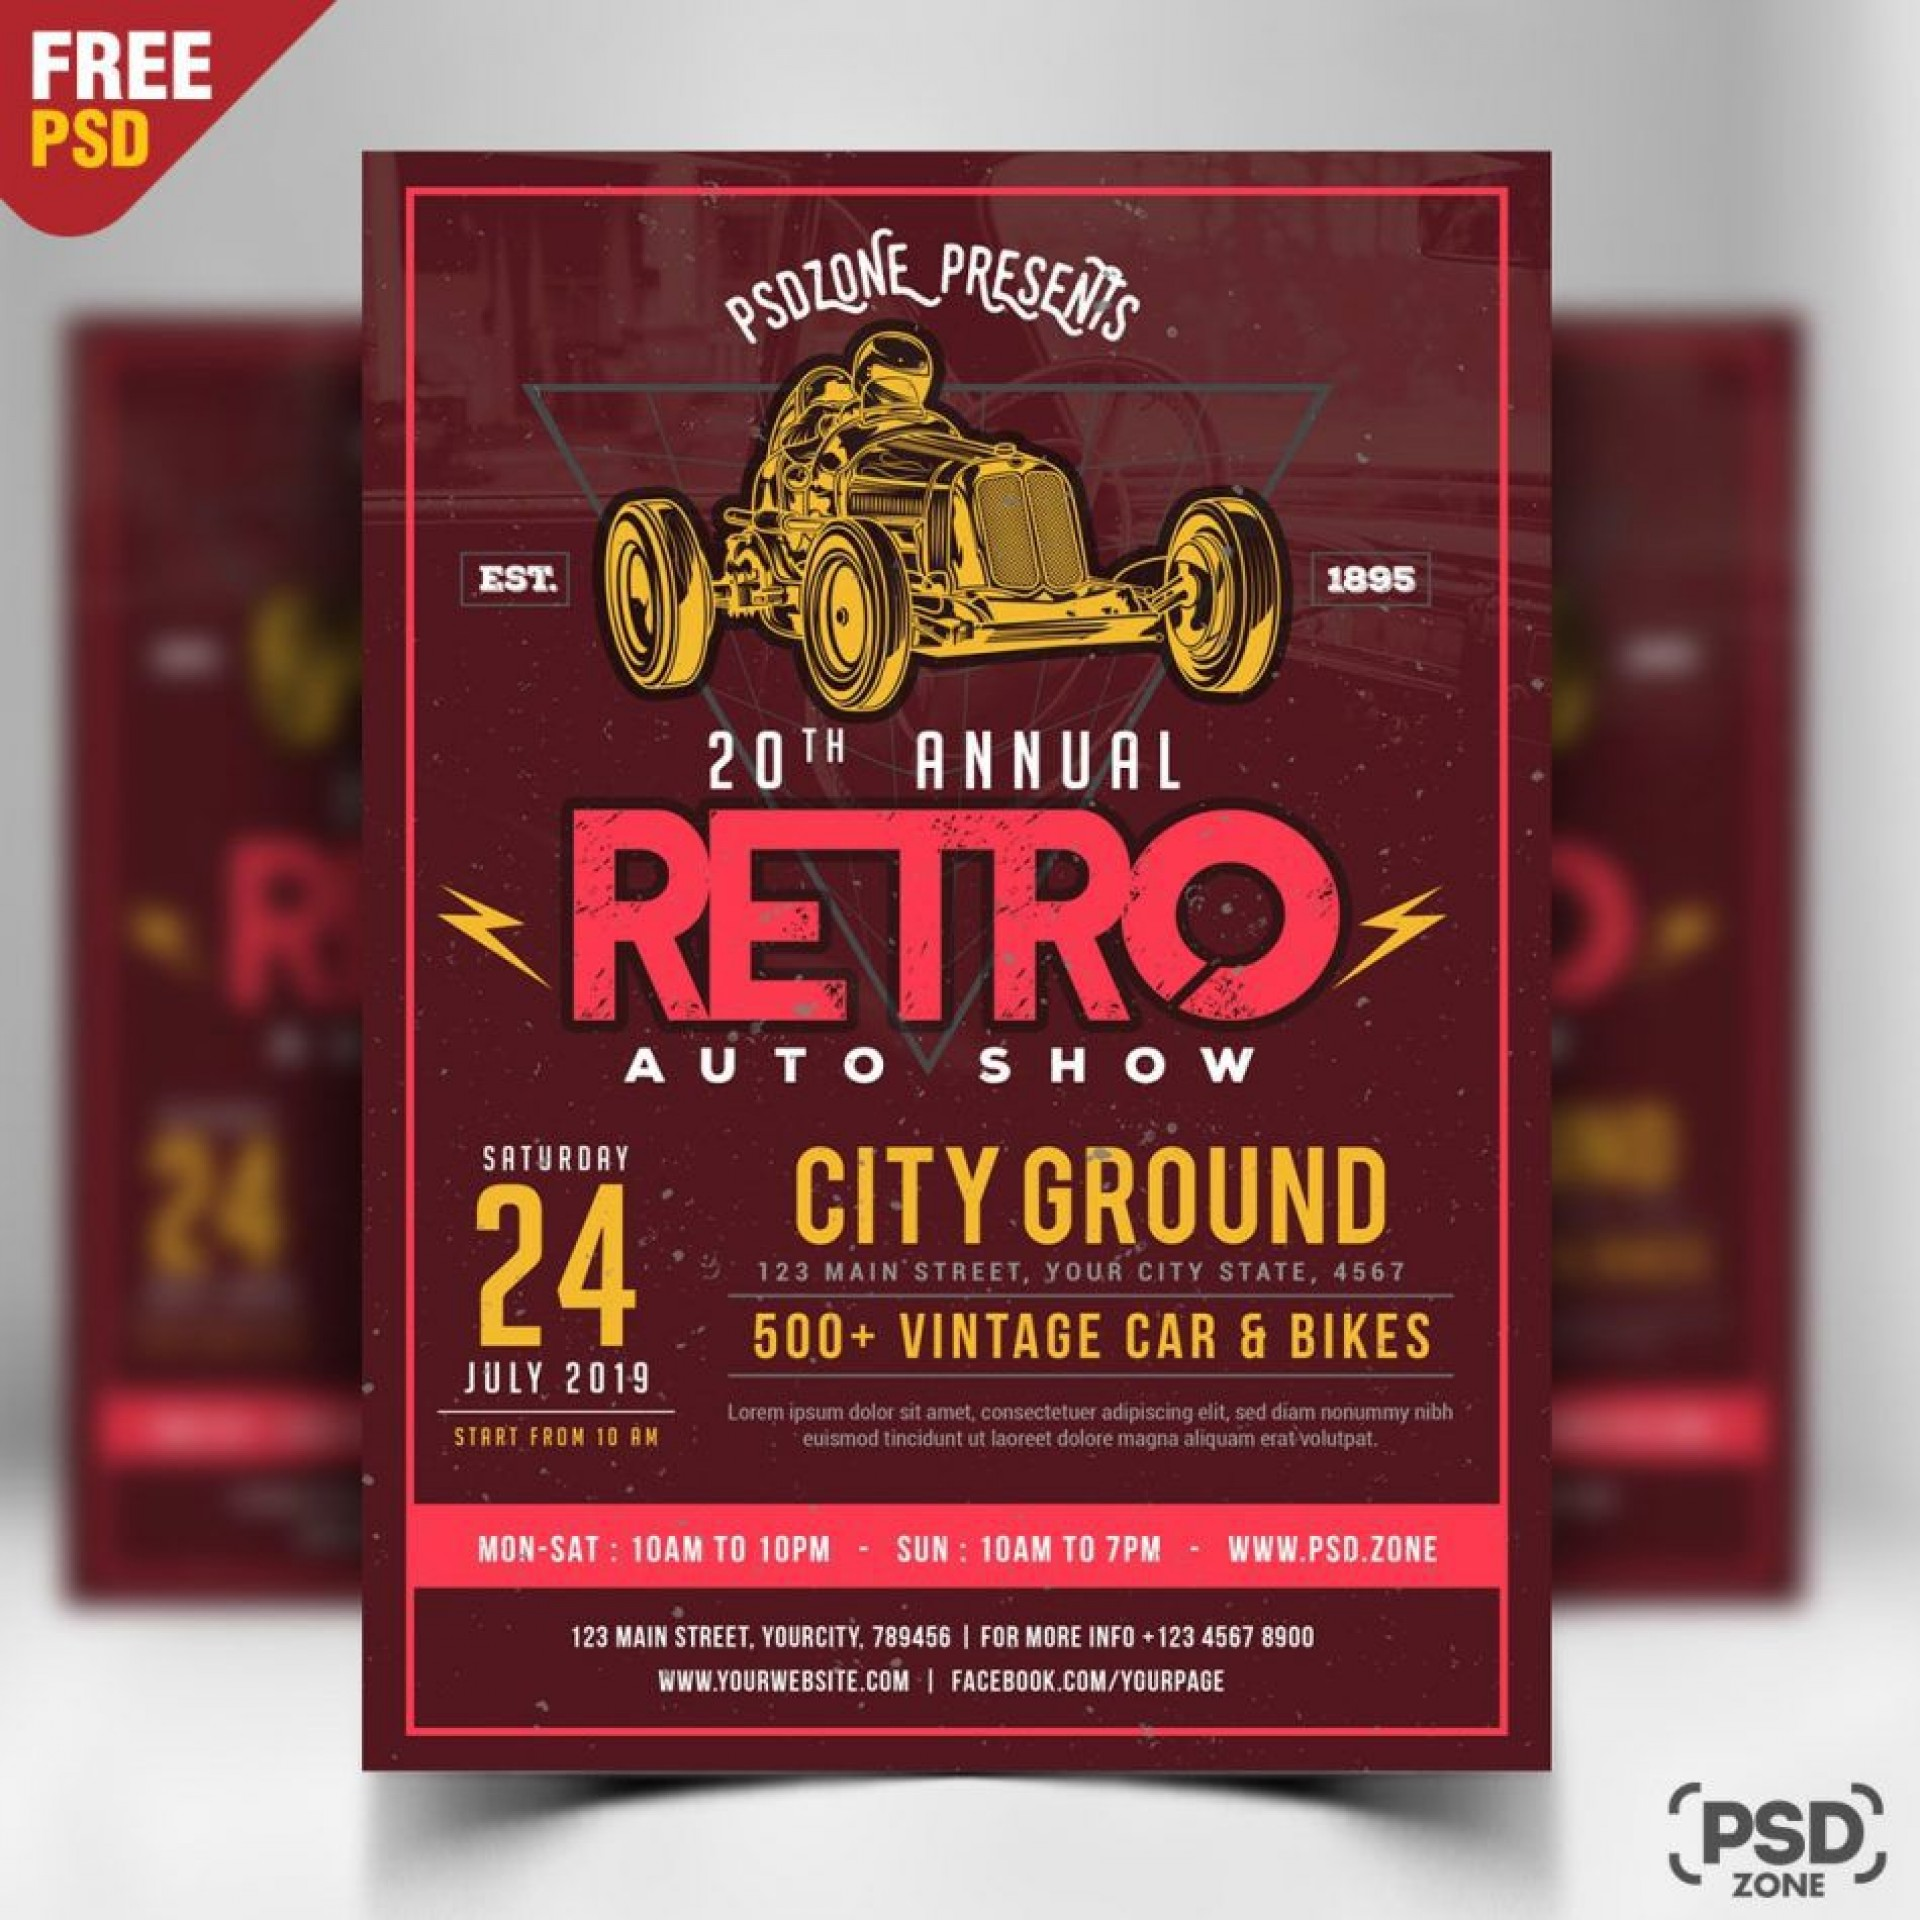 009 Fascinating Free Car Show Flyer Template Design  Psd And Bike1920